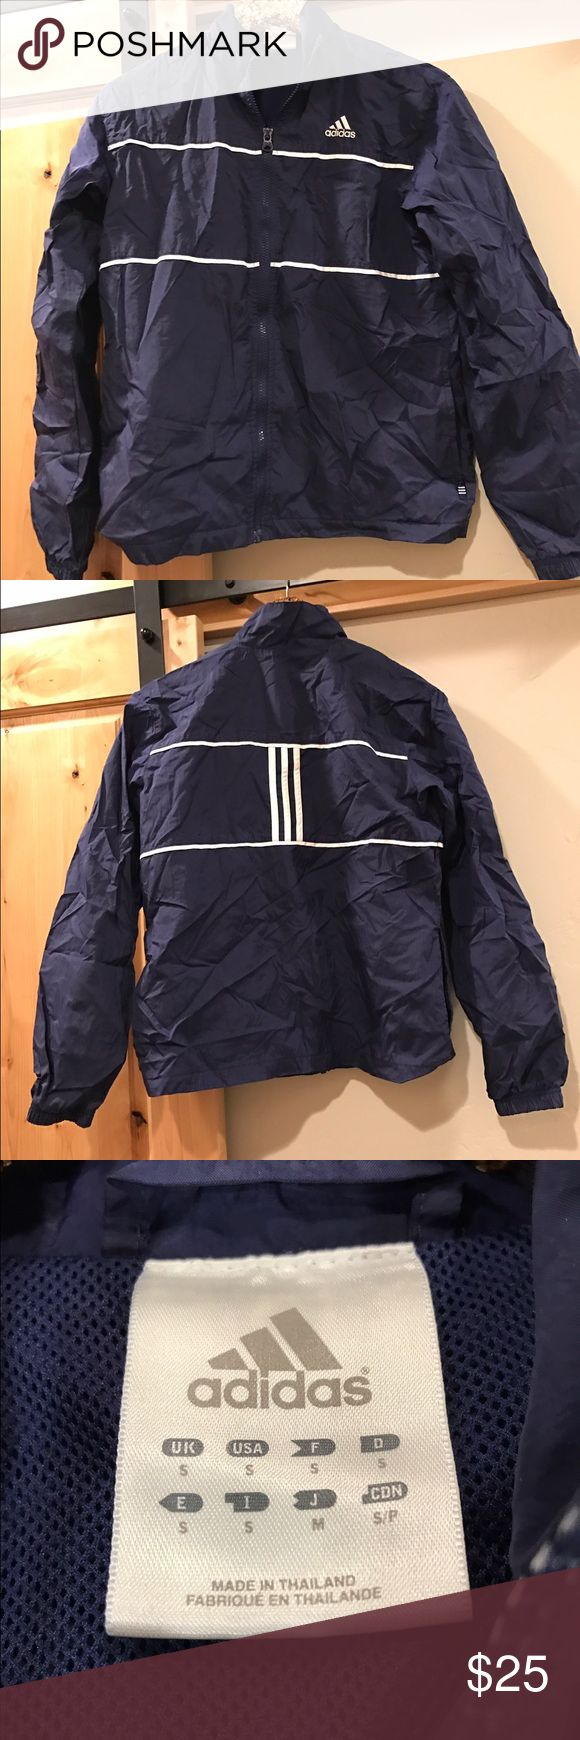 ADIDAS Zip Up Jogger Jacket. Great condition ADIDAS Navy Zip Up. Worn maybe once, great condition! Goes great with the ADIDAS jogger pants I also listed  Adidas Jackets & Coats Utility Jackets